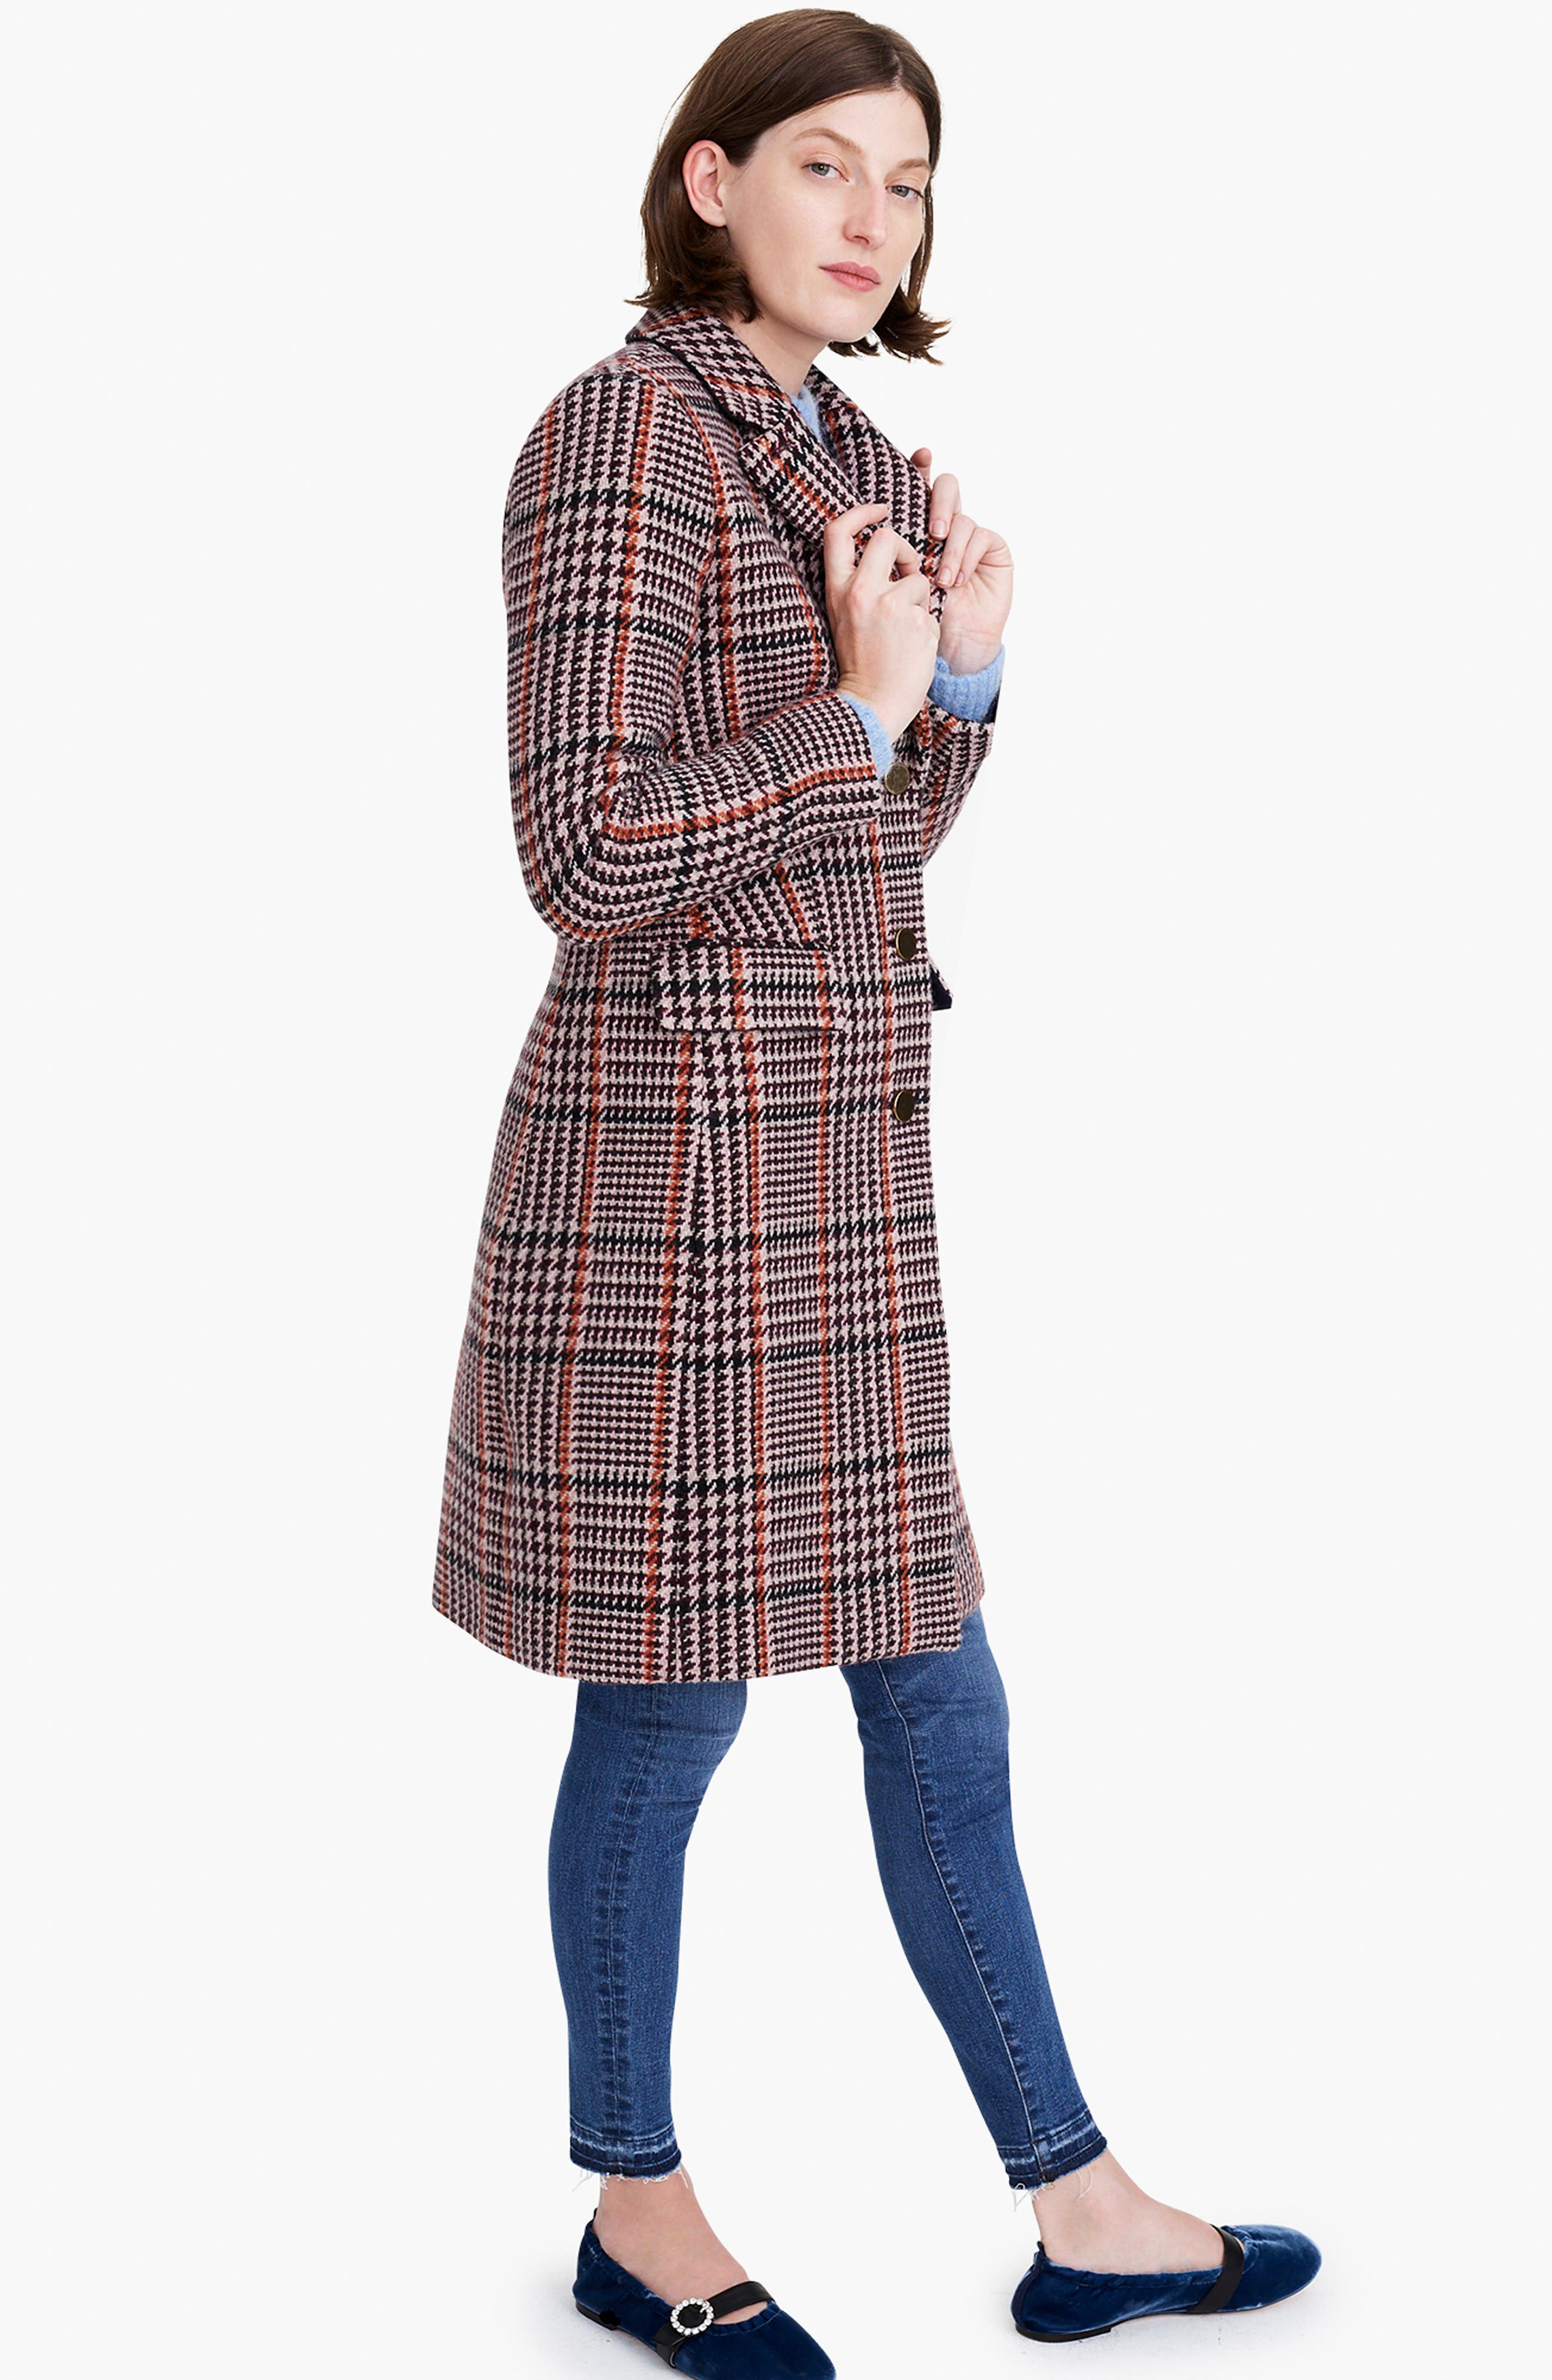 J.CREW, Plaid Single Breasted Topcoat, Alternate thumbnail 9, color, 600